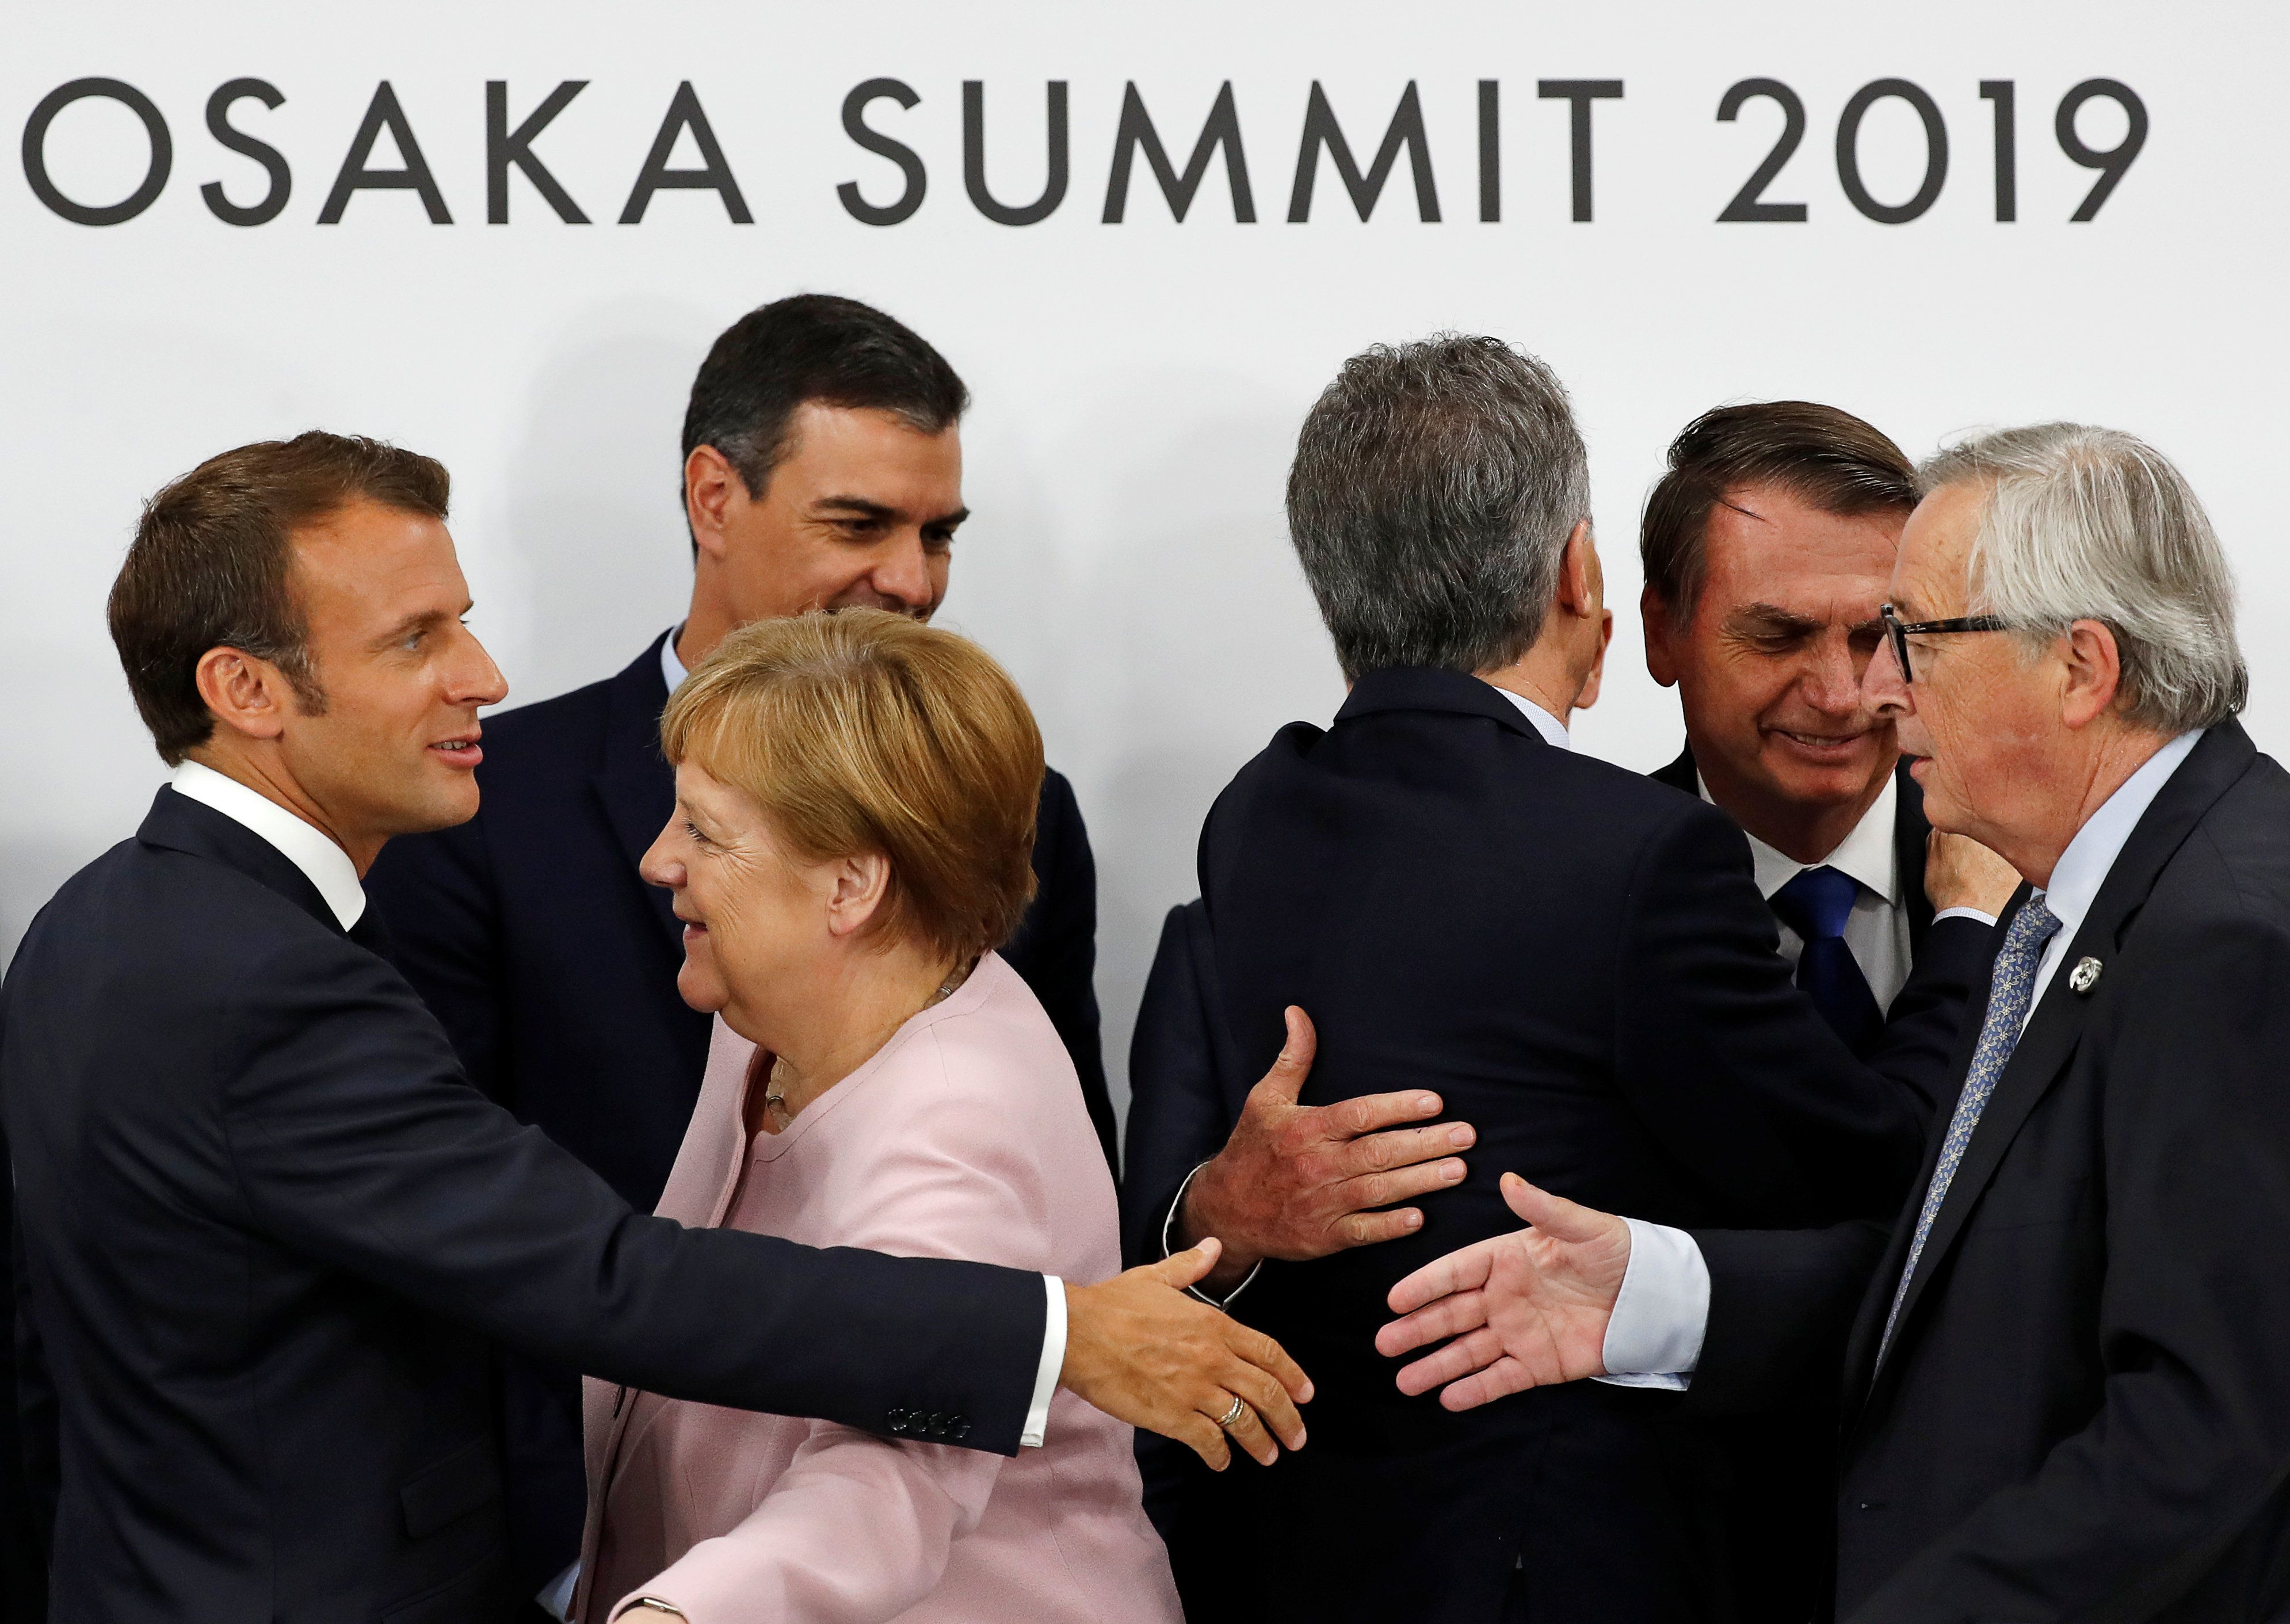 Protectionism What? EU and South America Strike Major Trade Deal